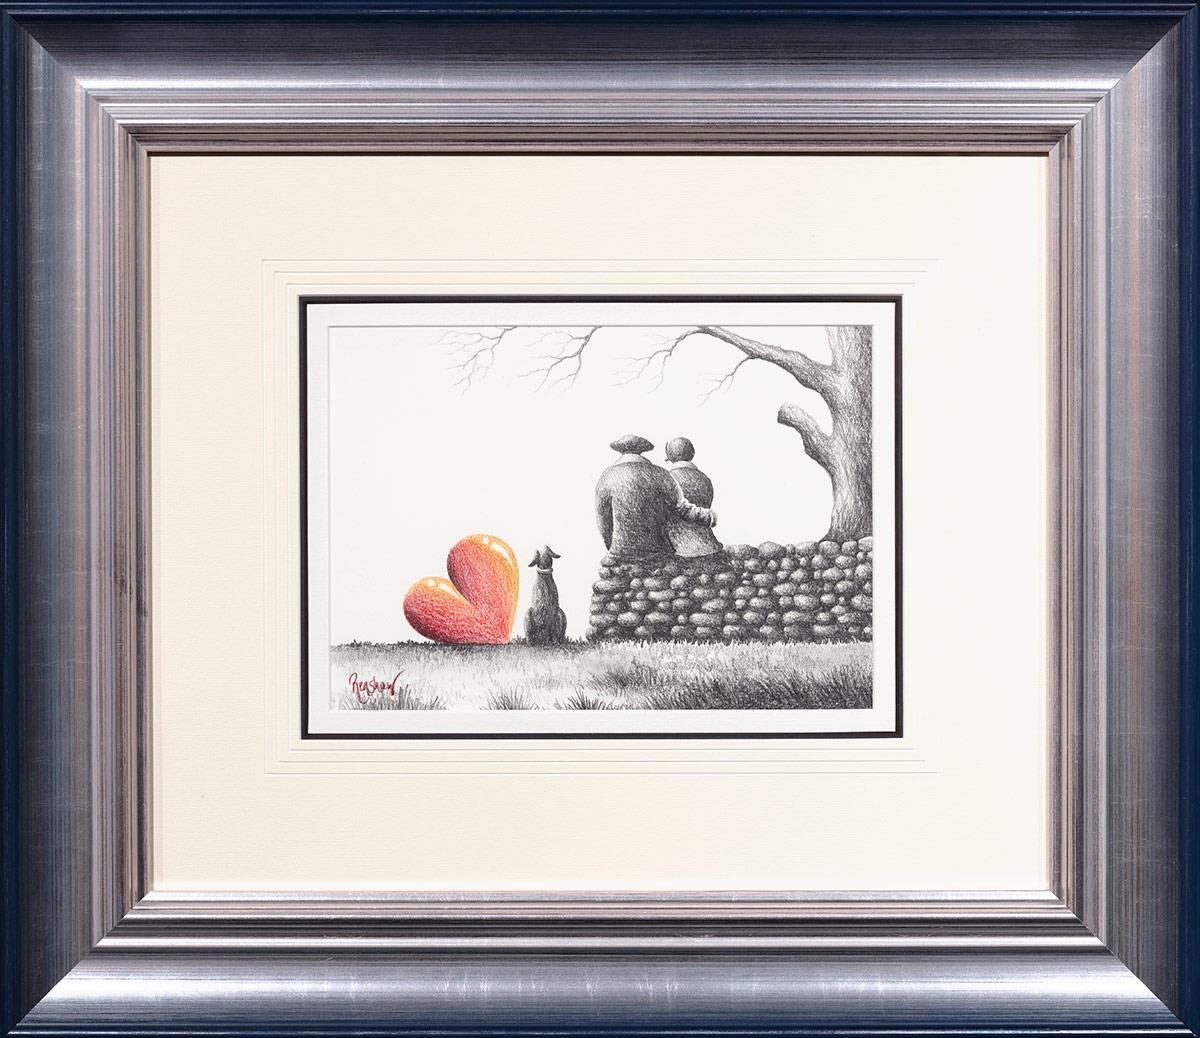 Contemplation - Sketch David Renshaw Framed